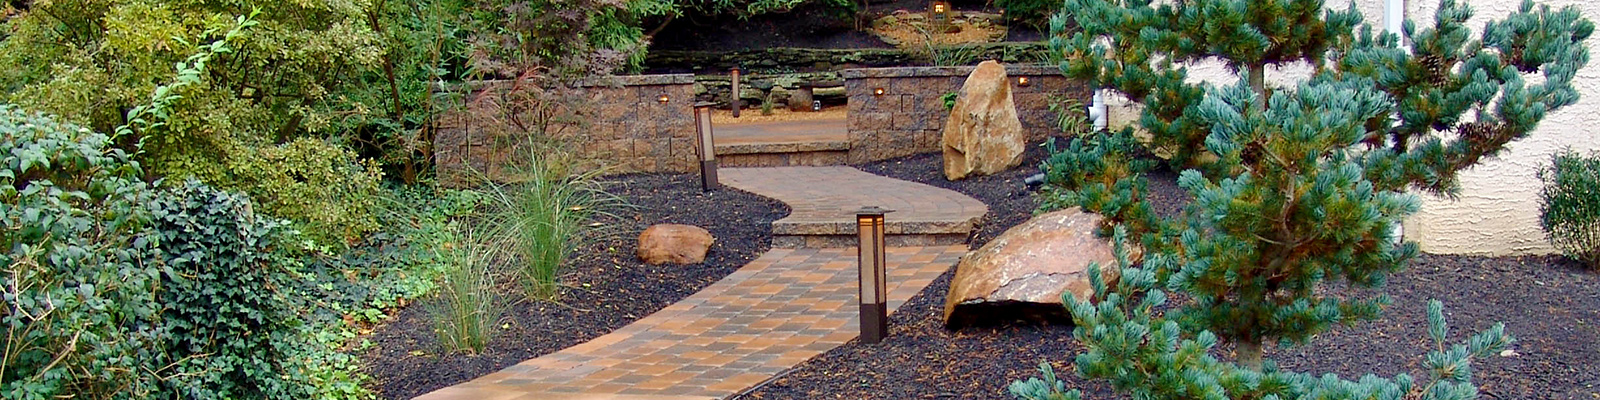 Stone pathway through landscaped yard